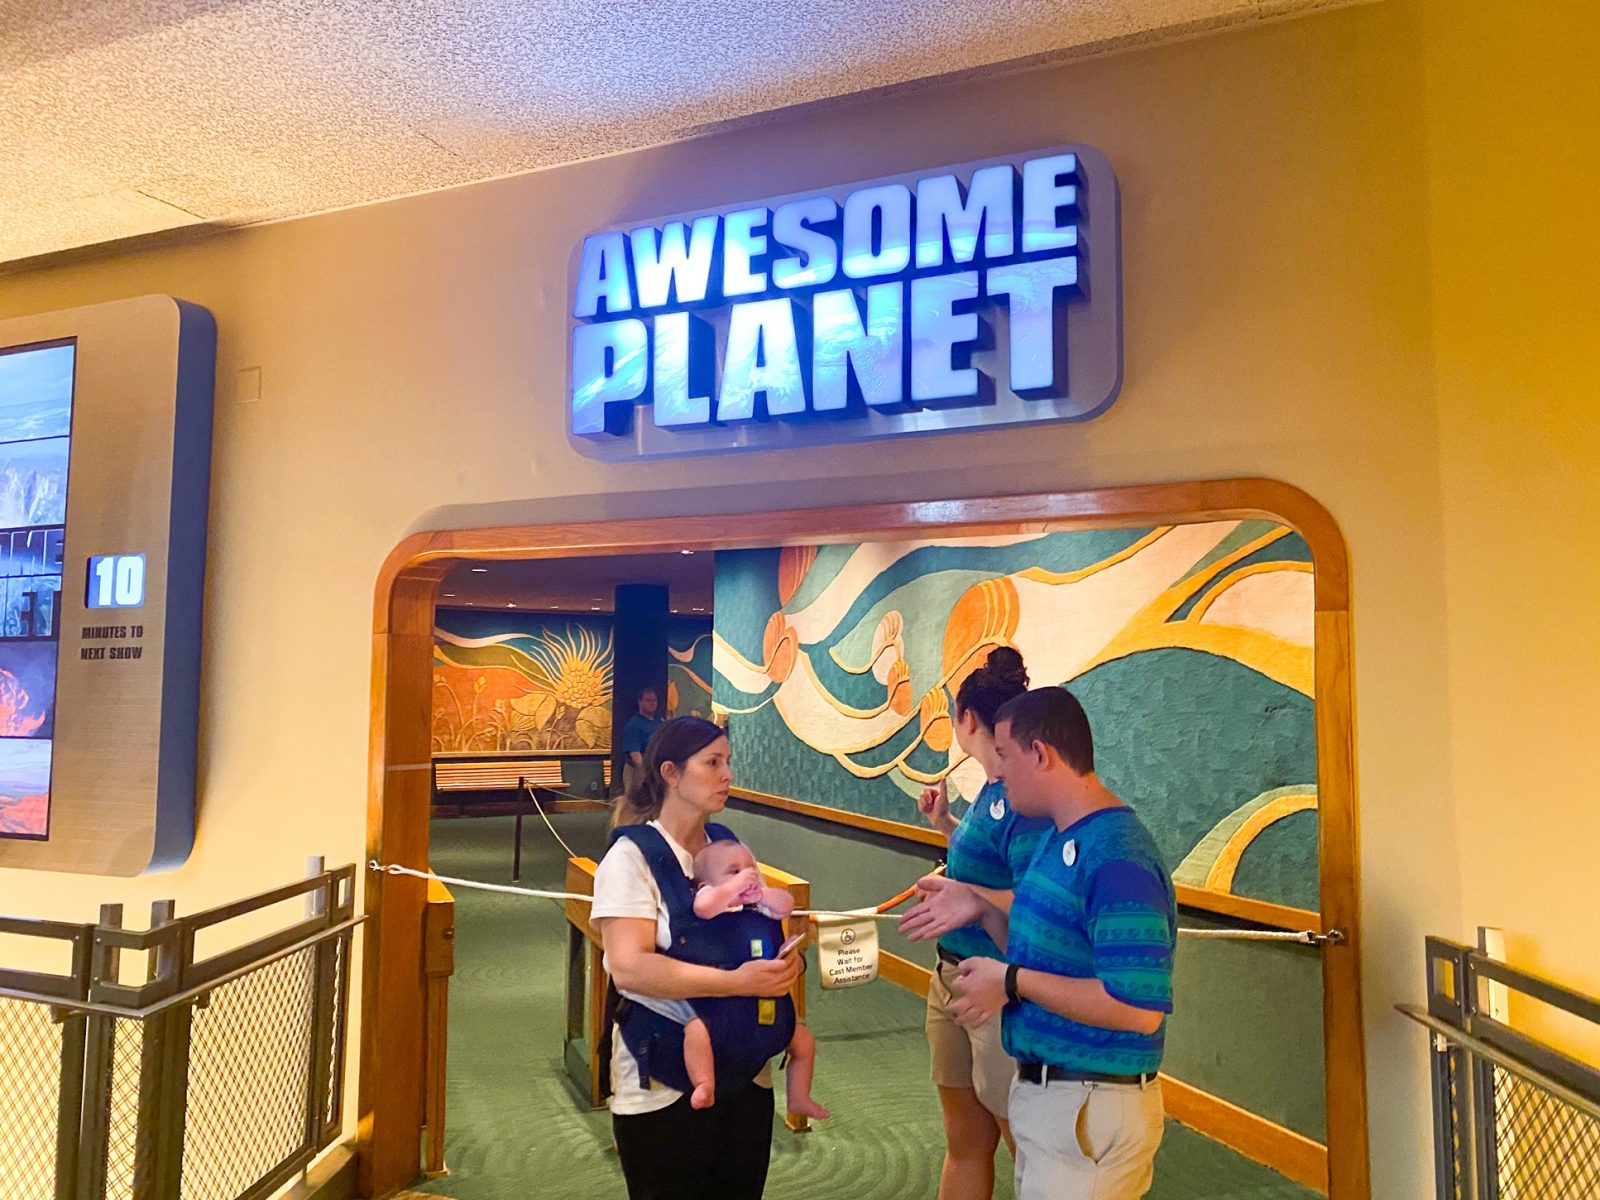 Awesome Planet a Disney World show